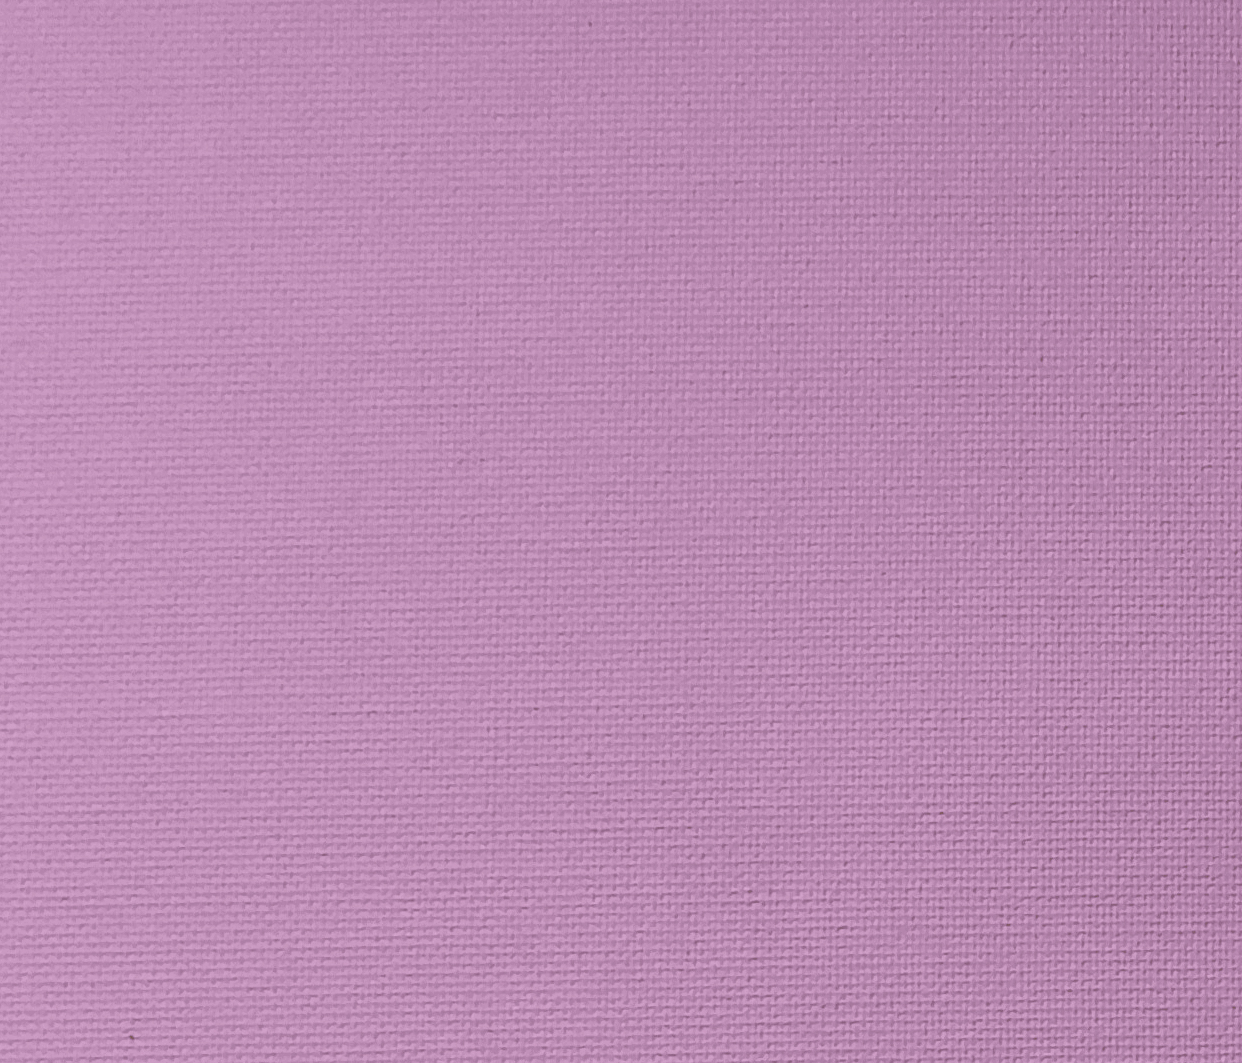 Eden Lilac Blackout Blind Fabric